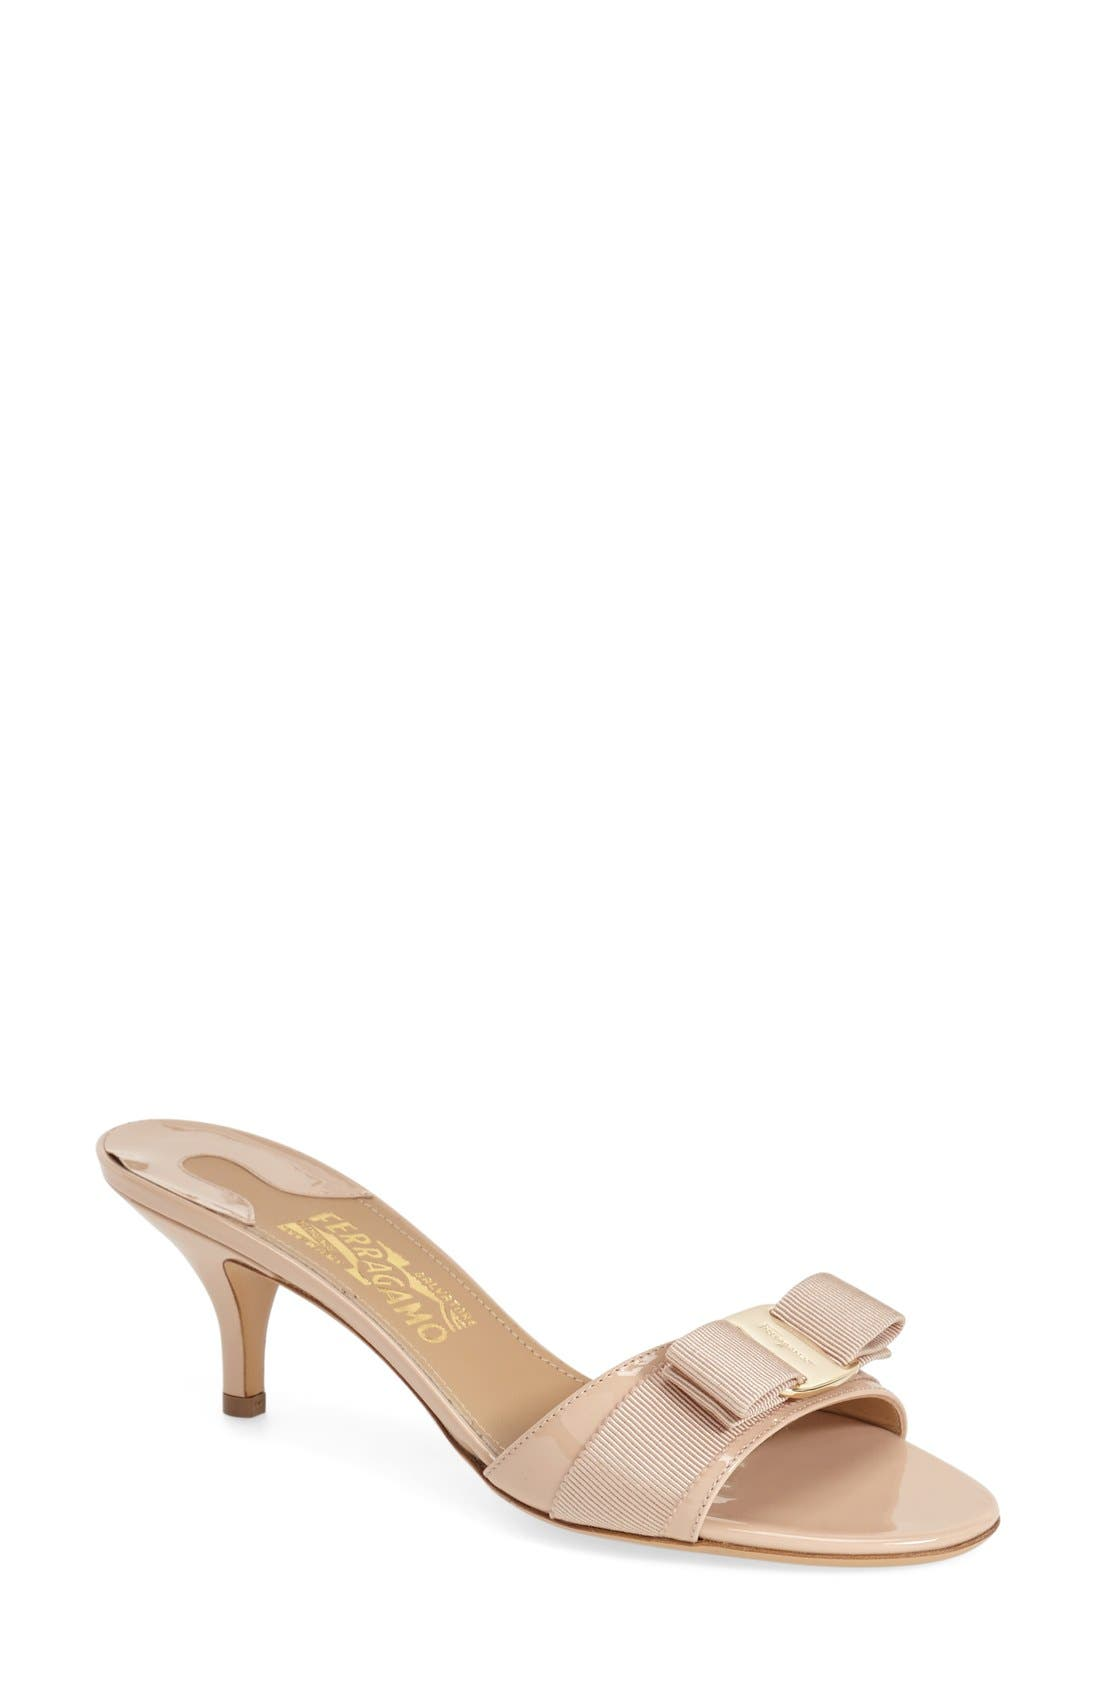 Main Image - Salvatore Ferragamo 'Glory' Bow Trim Sandal